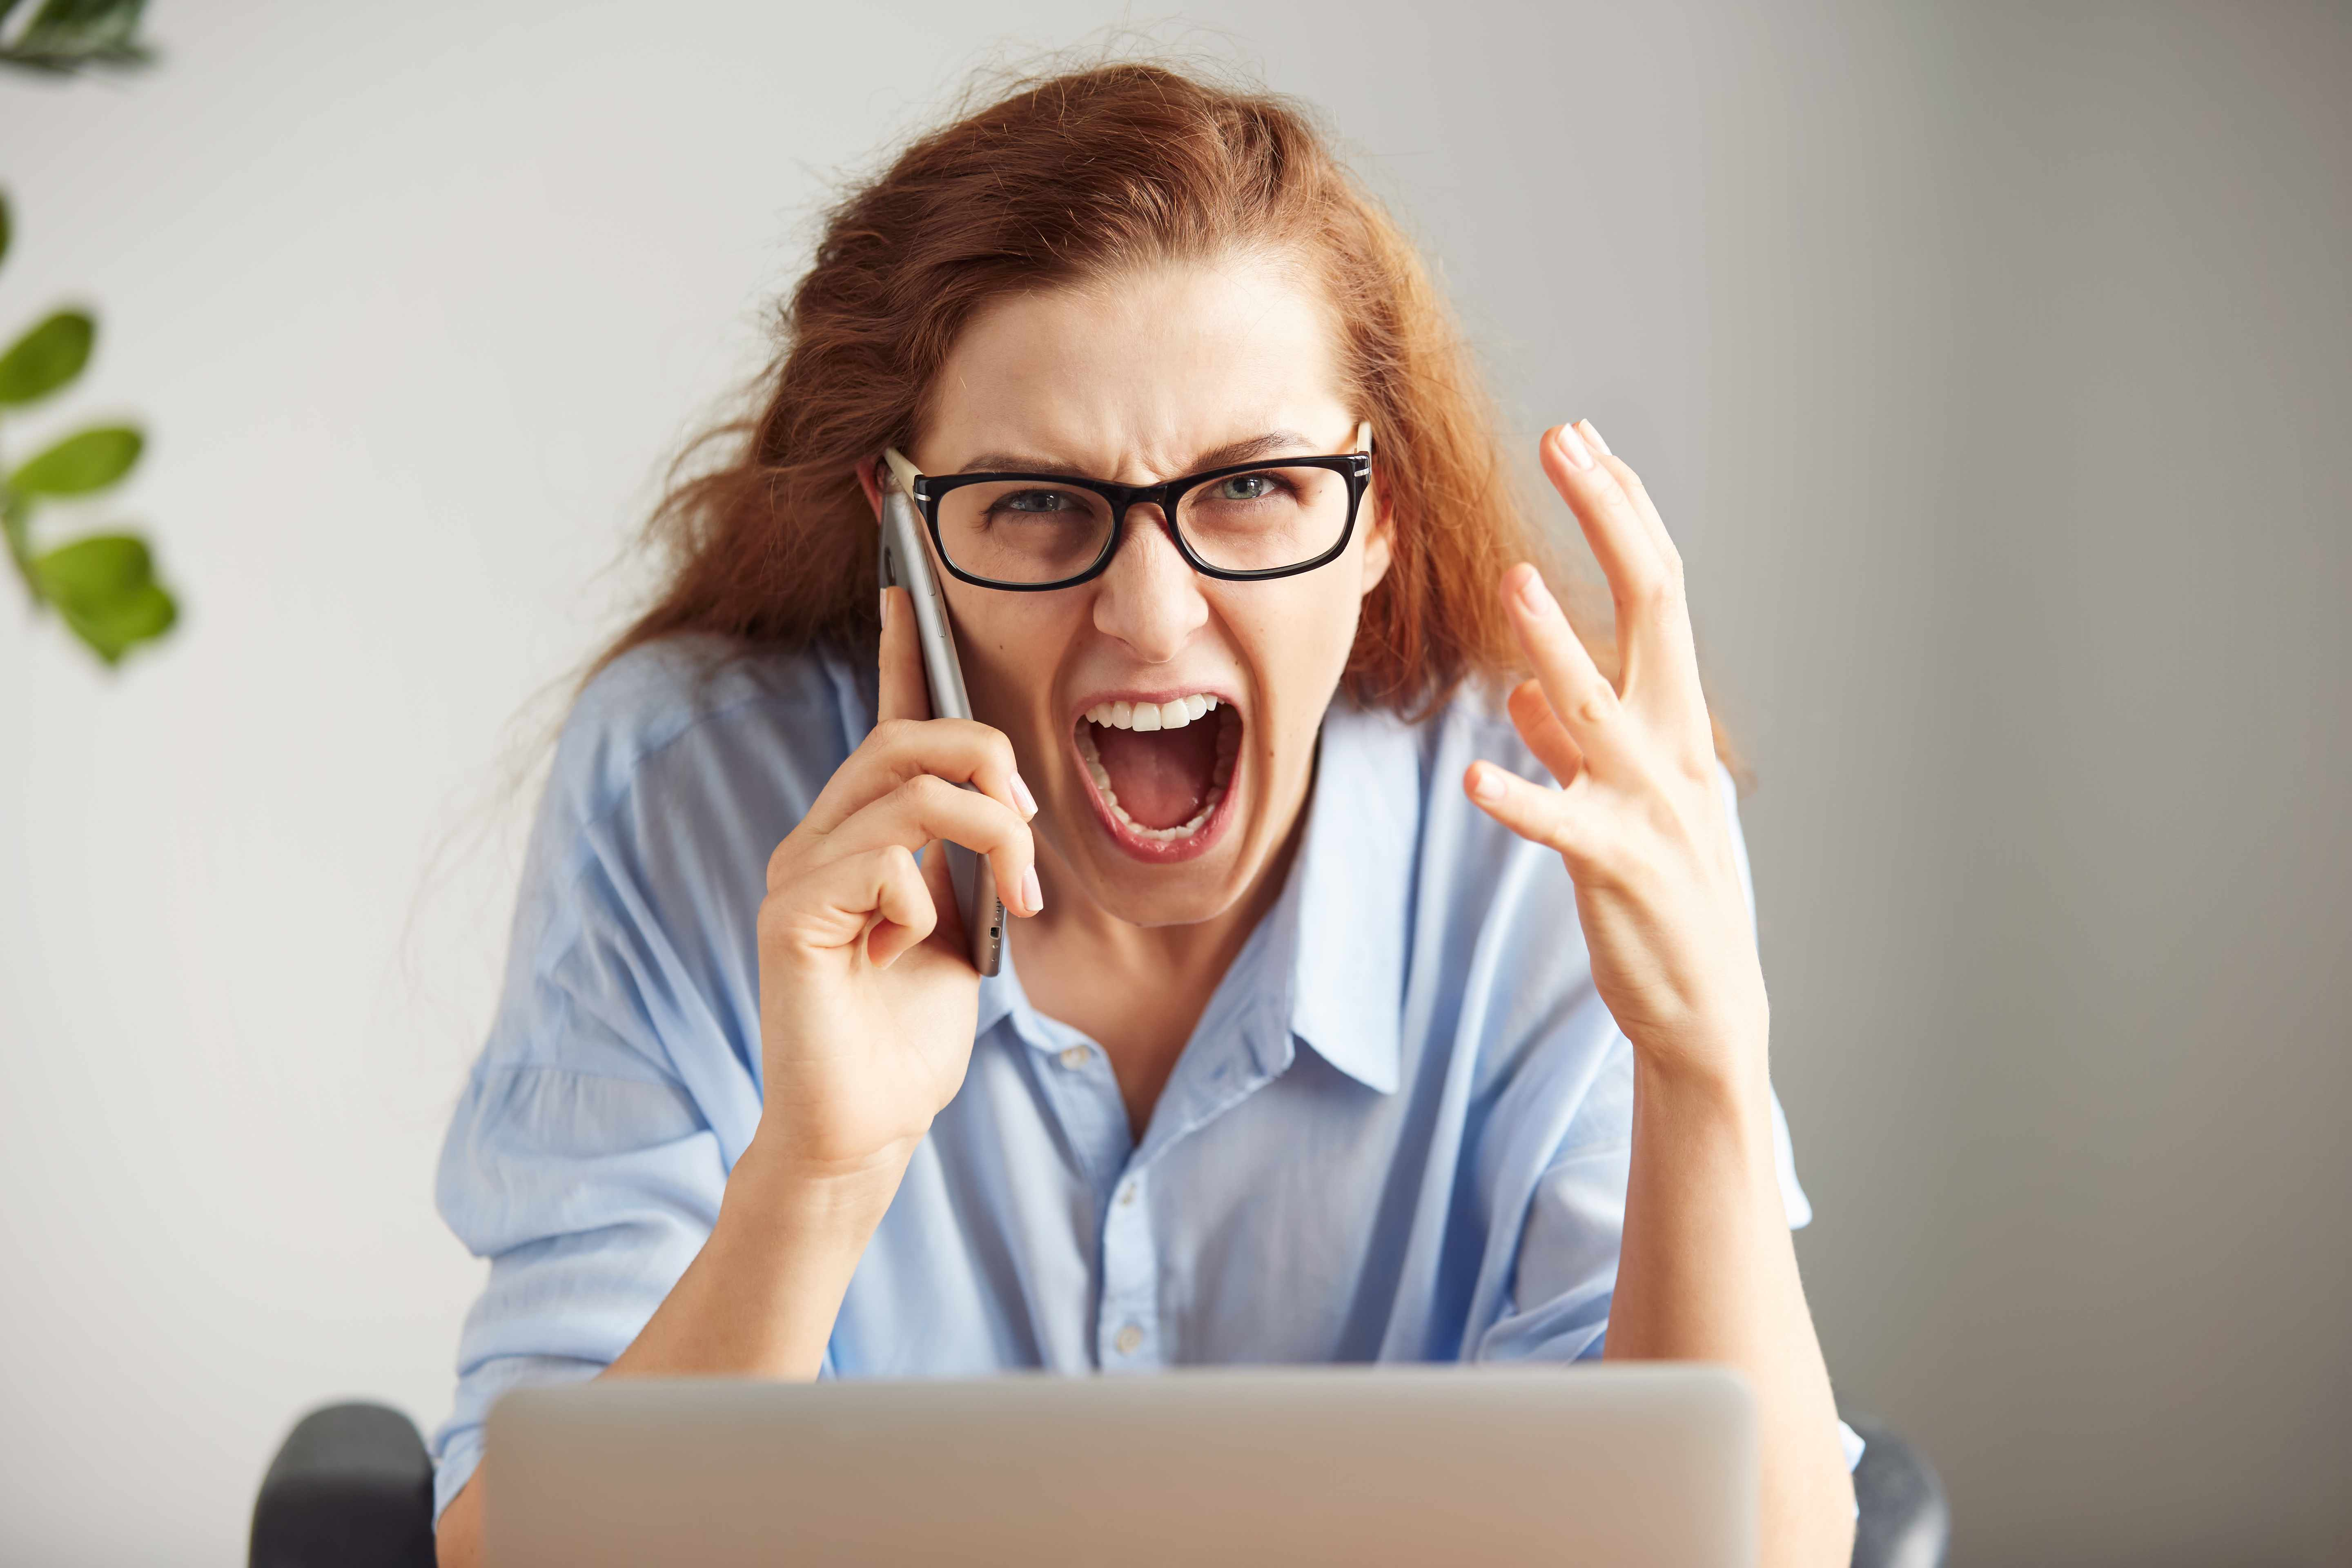 a woman wearing glasses, sitting at a desk angry and yelling into a phone